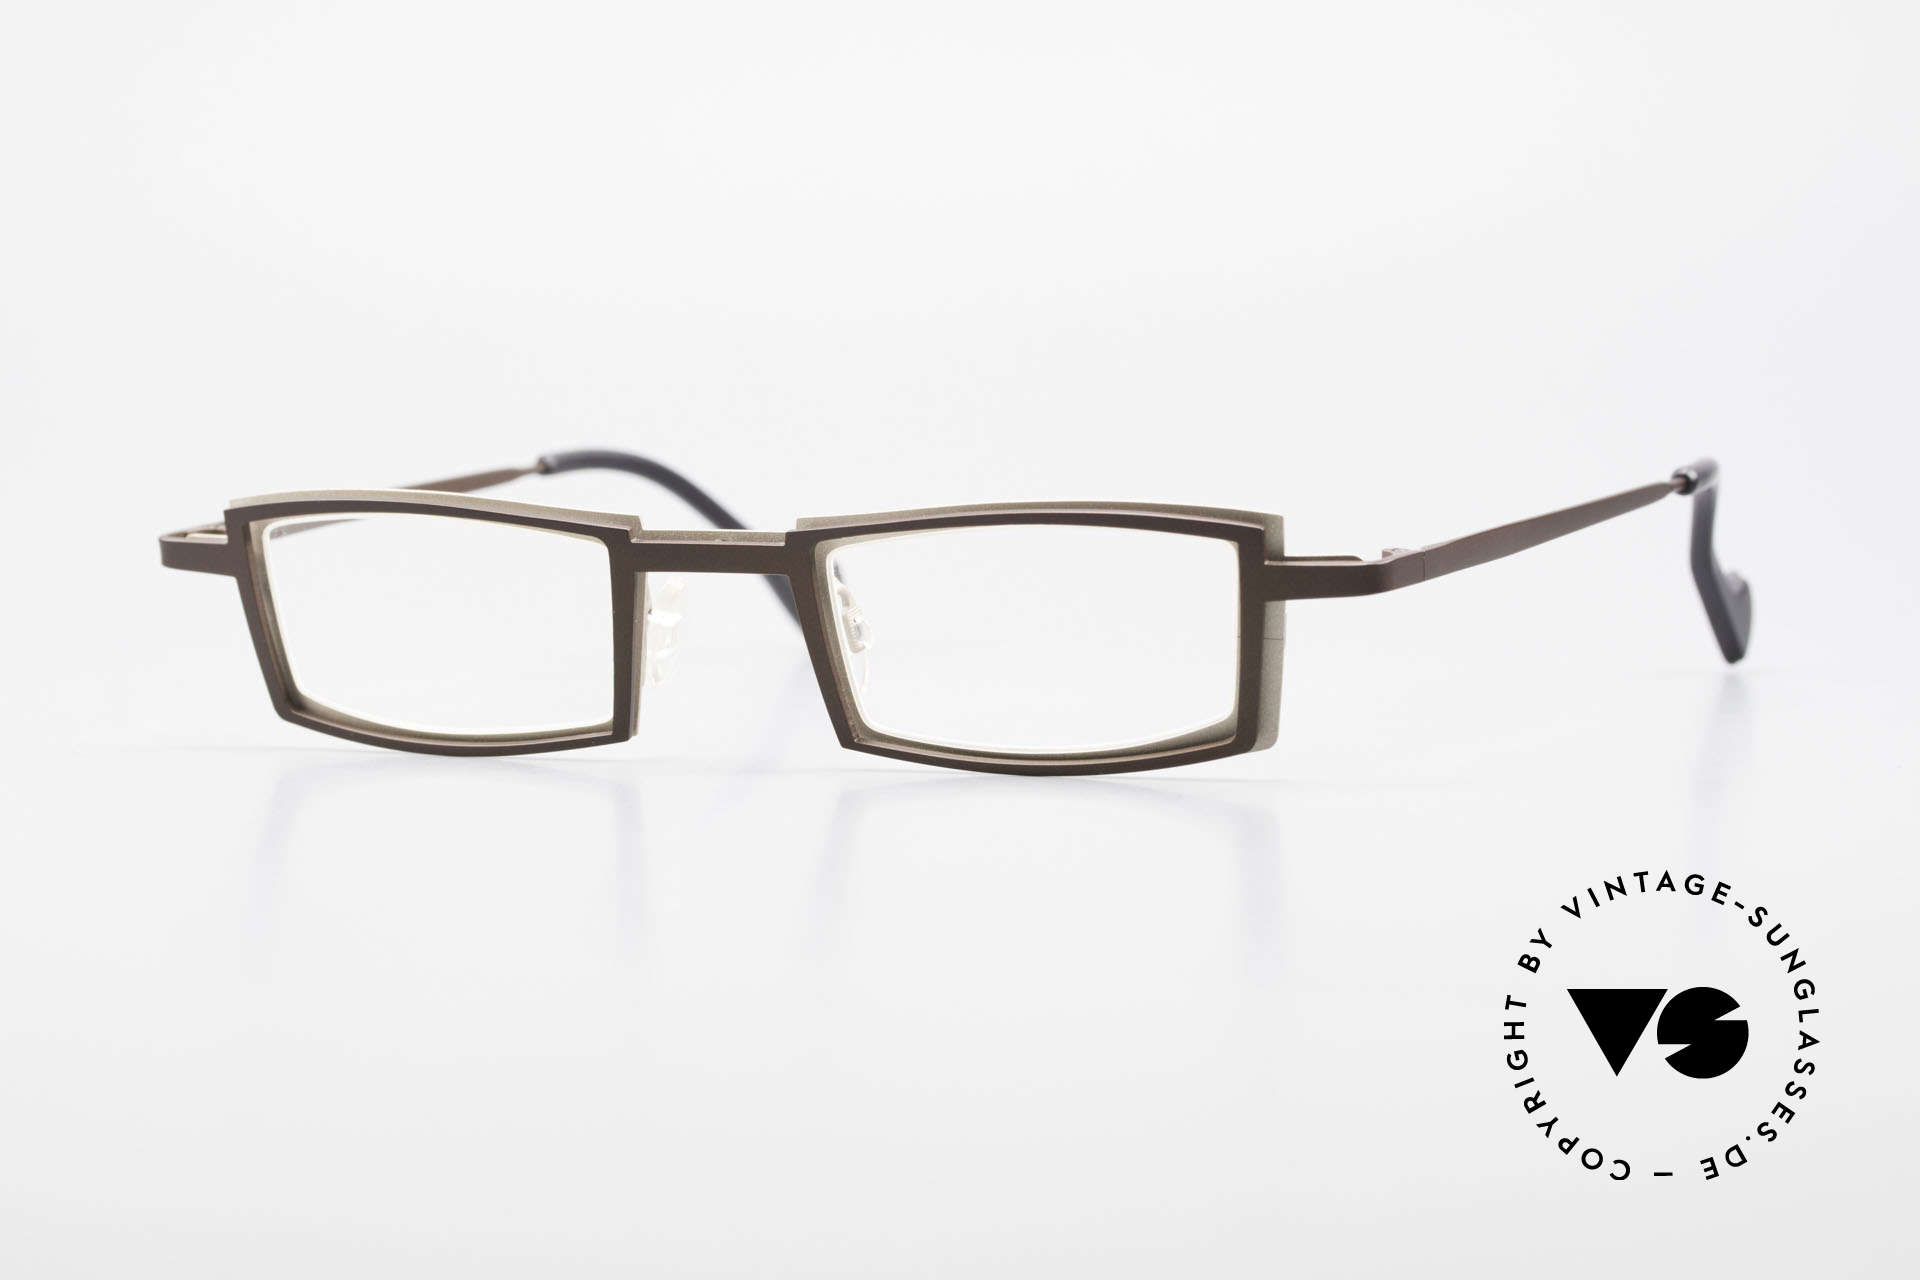 Theo Belgium Kwartet Designer Eyeglasses Vintage, Theo Belgium: the most self-willed brand in the world, Made for Men and Women